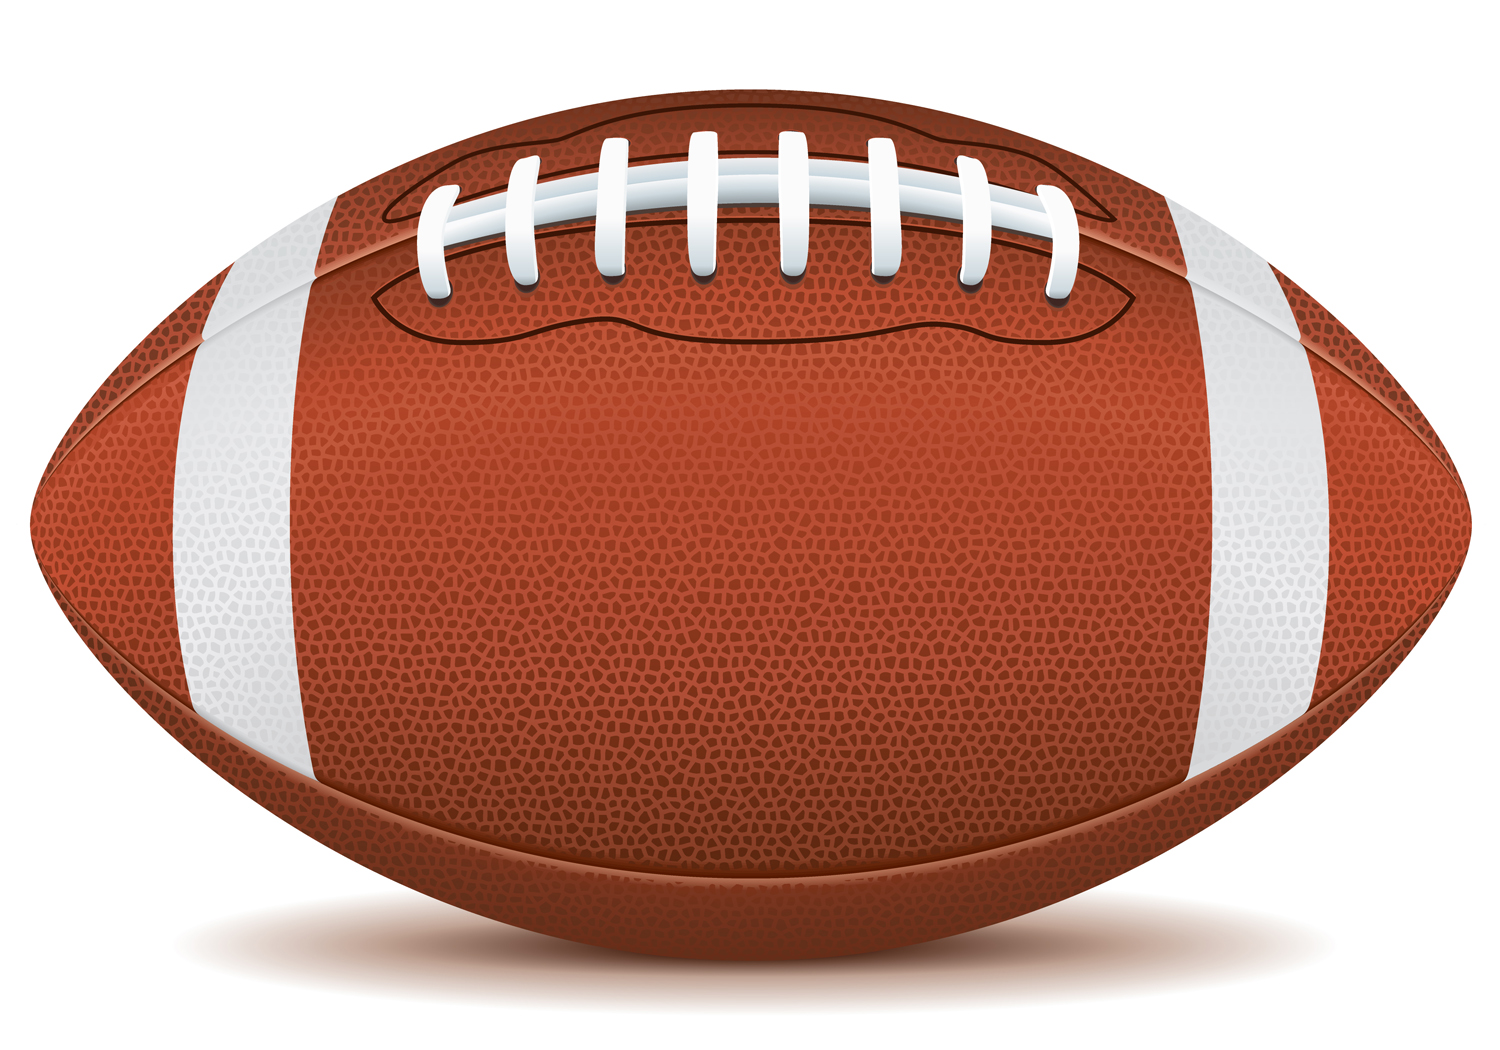 1500x1050 Nfl Football Clipart